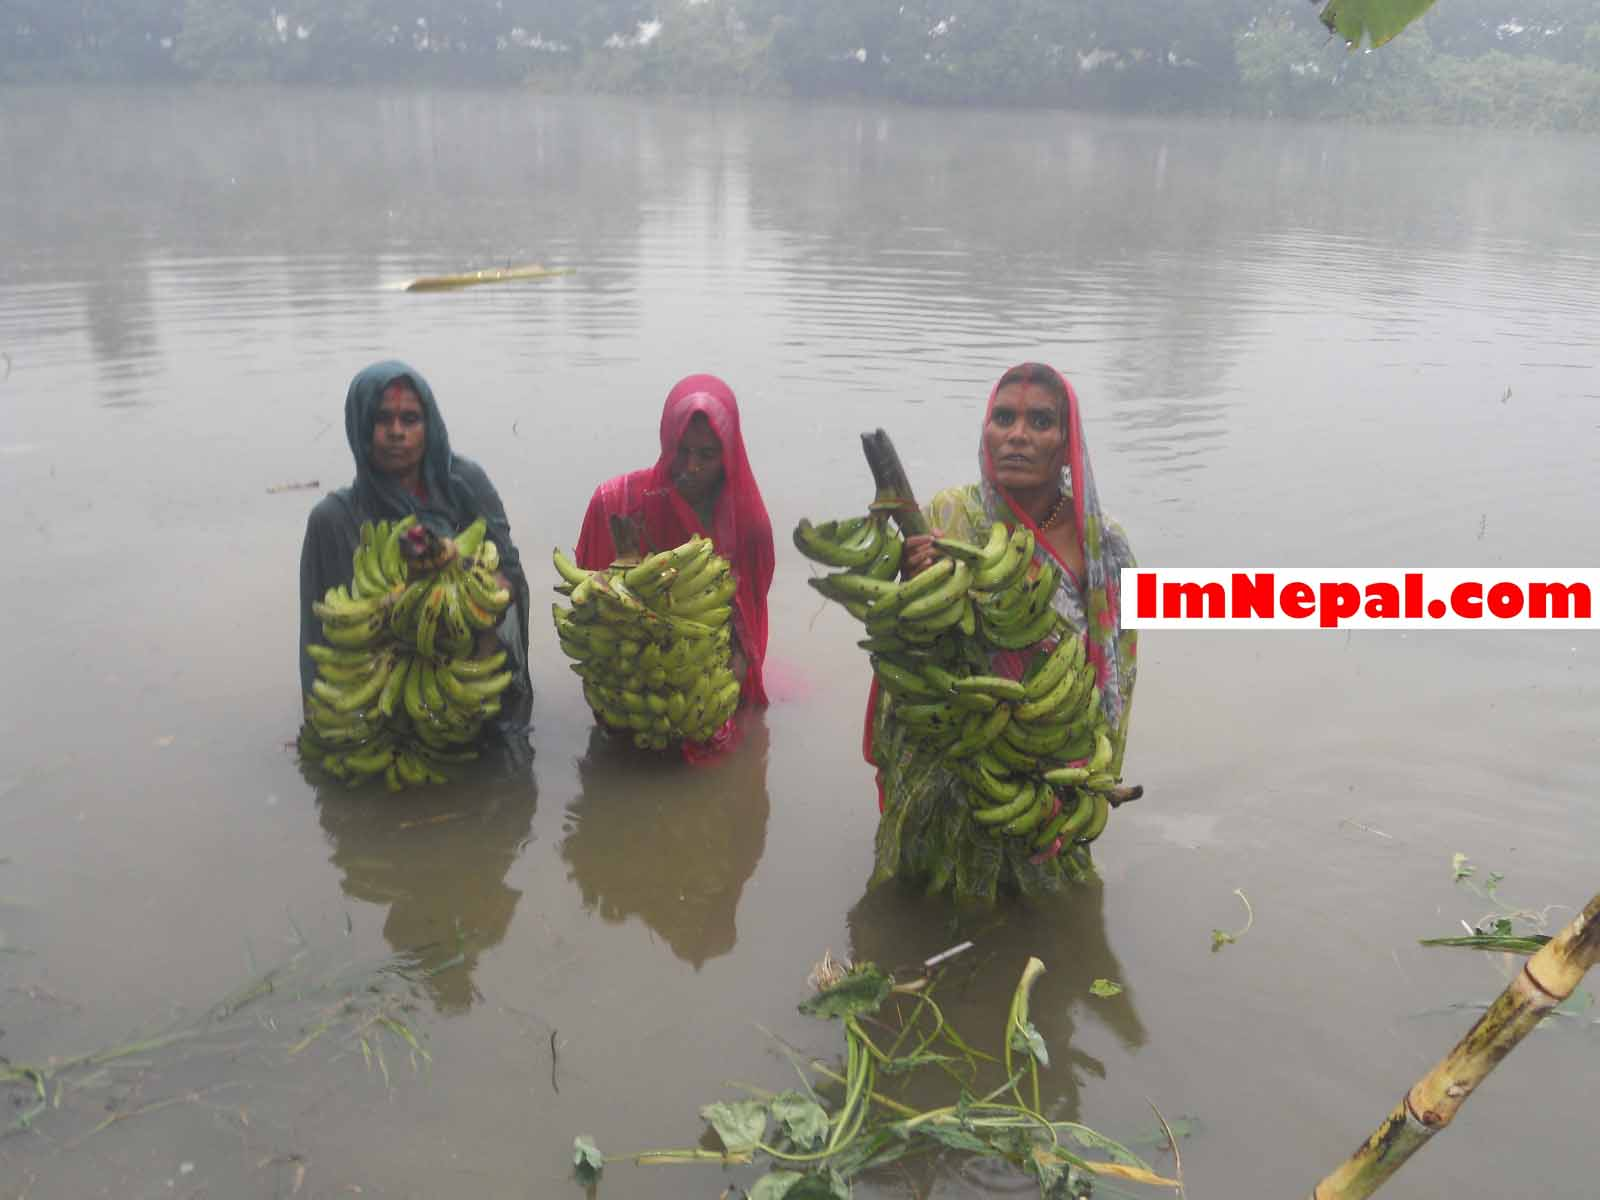 Chhath Puja. Some devotees are bathing in Ganga River....